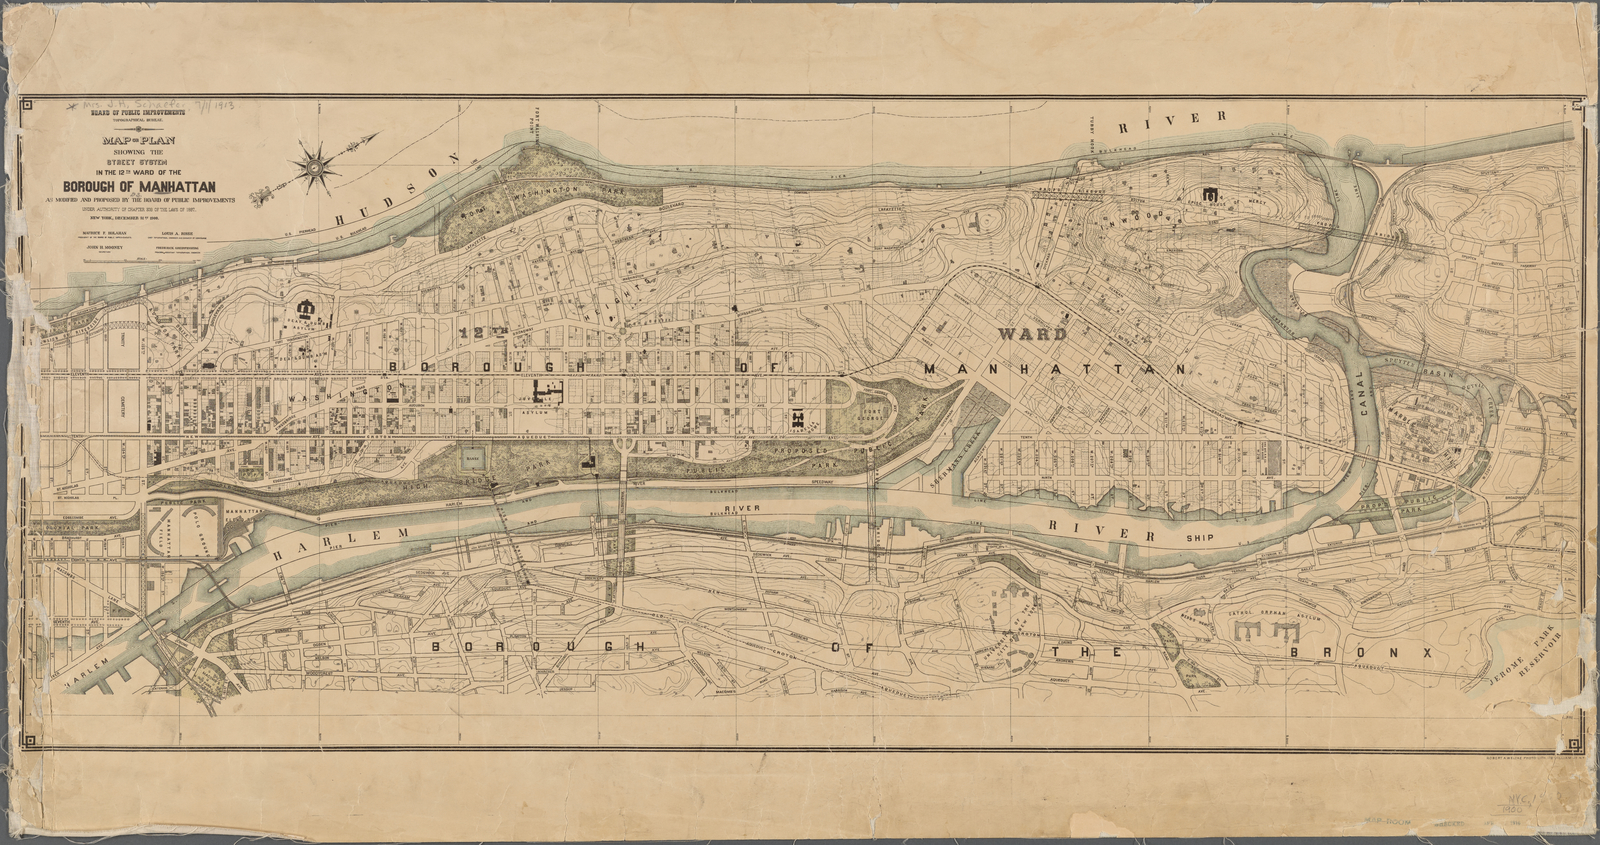 Map or plan showing the street system in the 12th ward of the Borough of Manhattan.